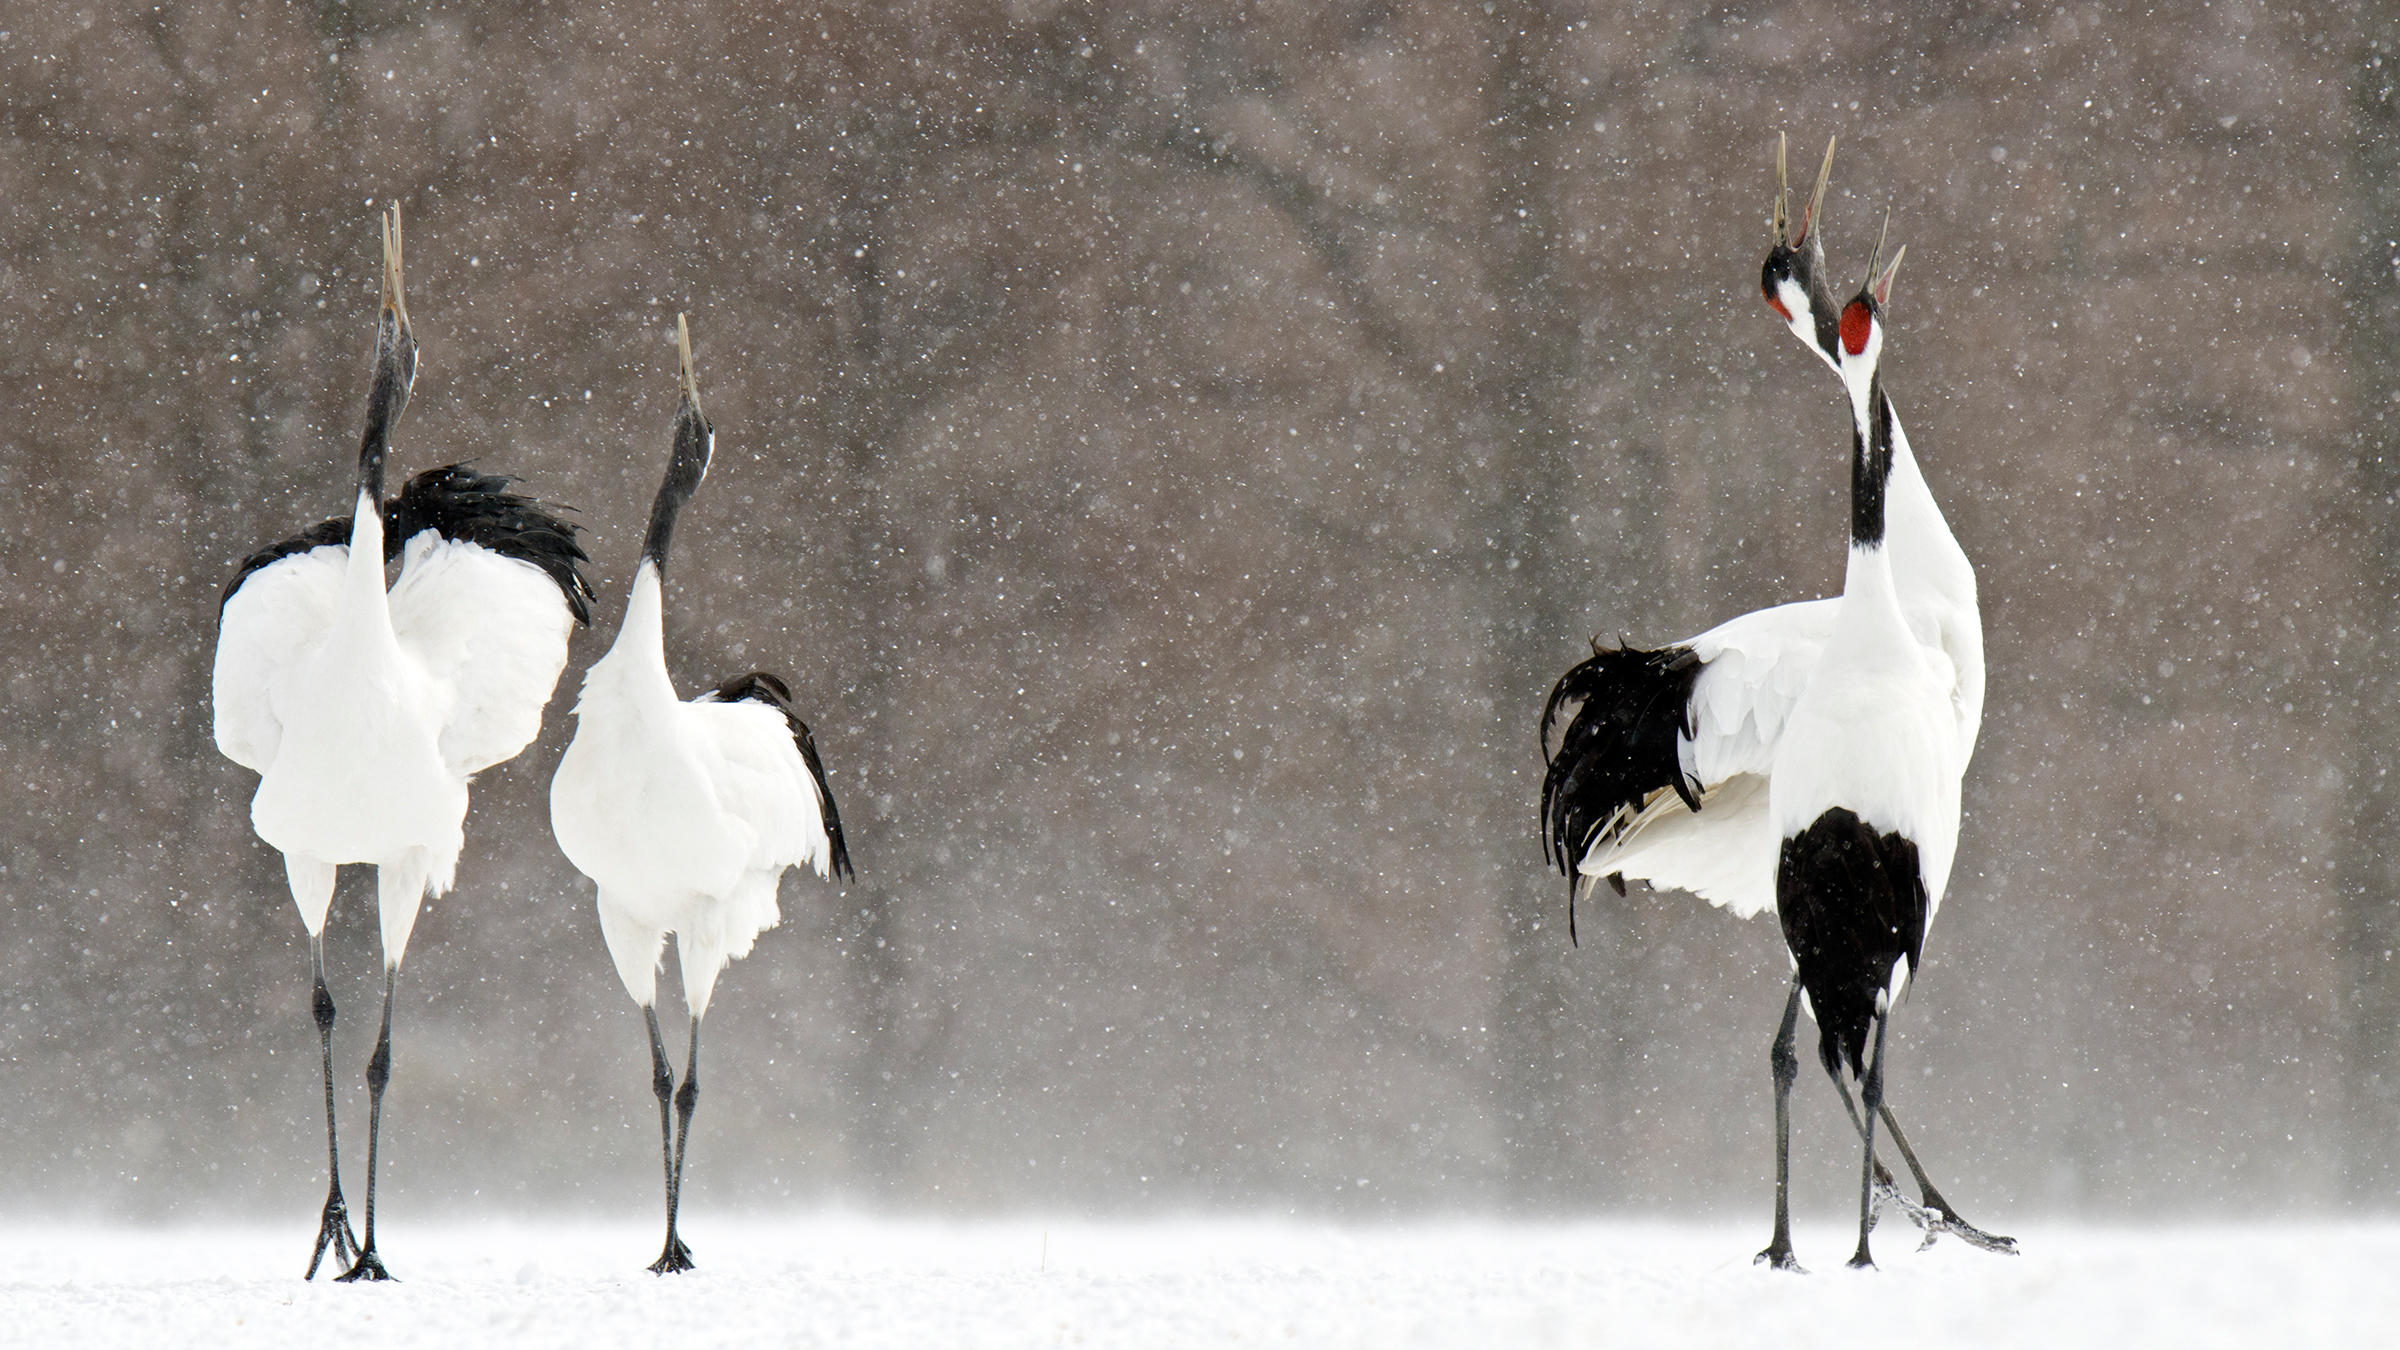 Due to drought and development, Red-crowned Cranes are having trouble breeding in their native wetlands in Asia. The drought is believed to be a result of climate change. David Courtenay/Audubon Photography Awards